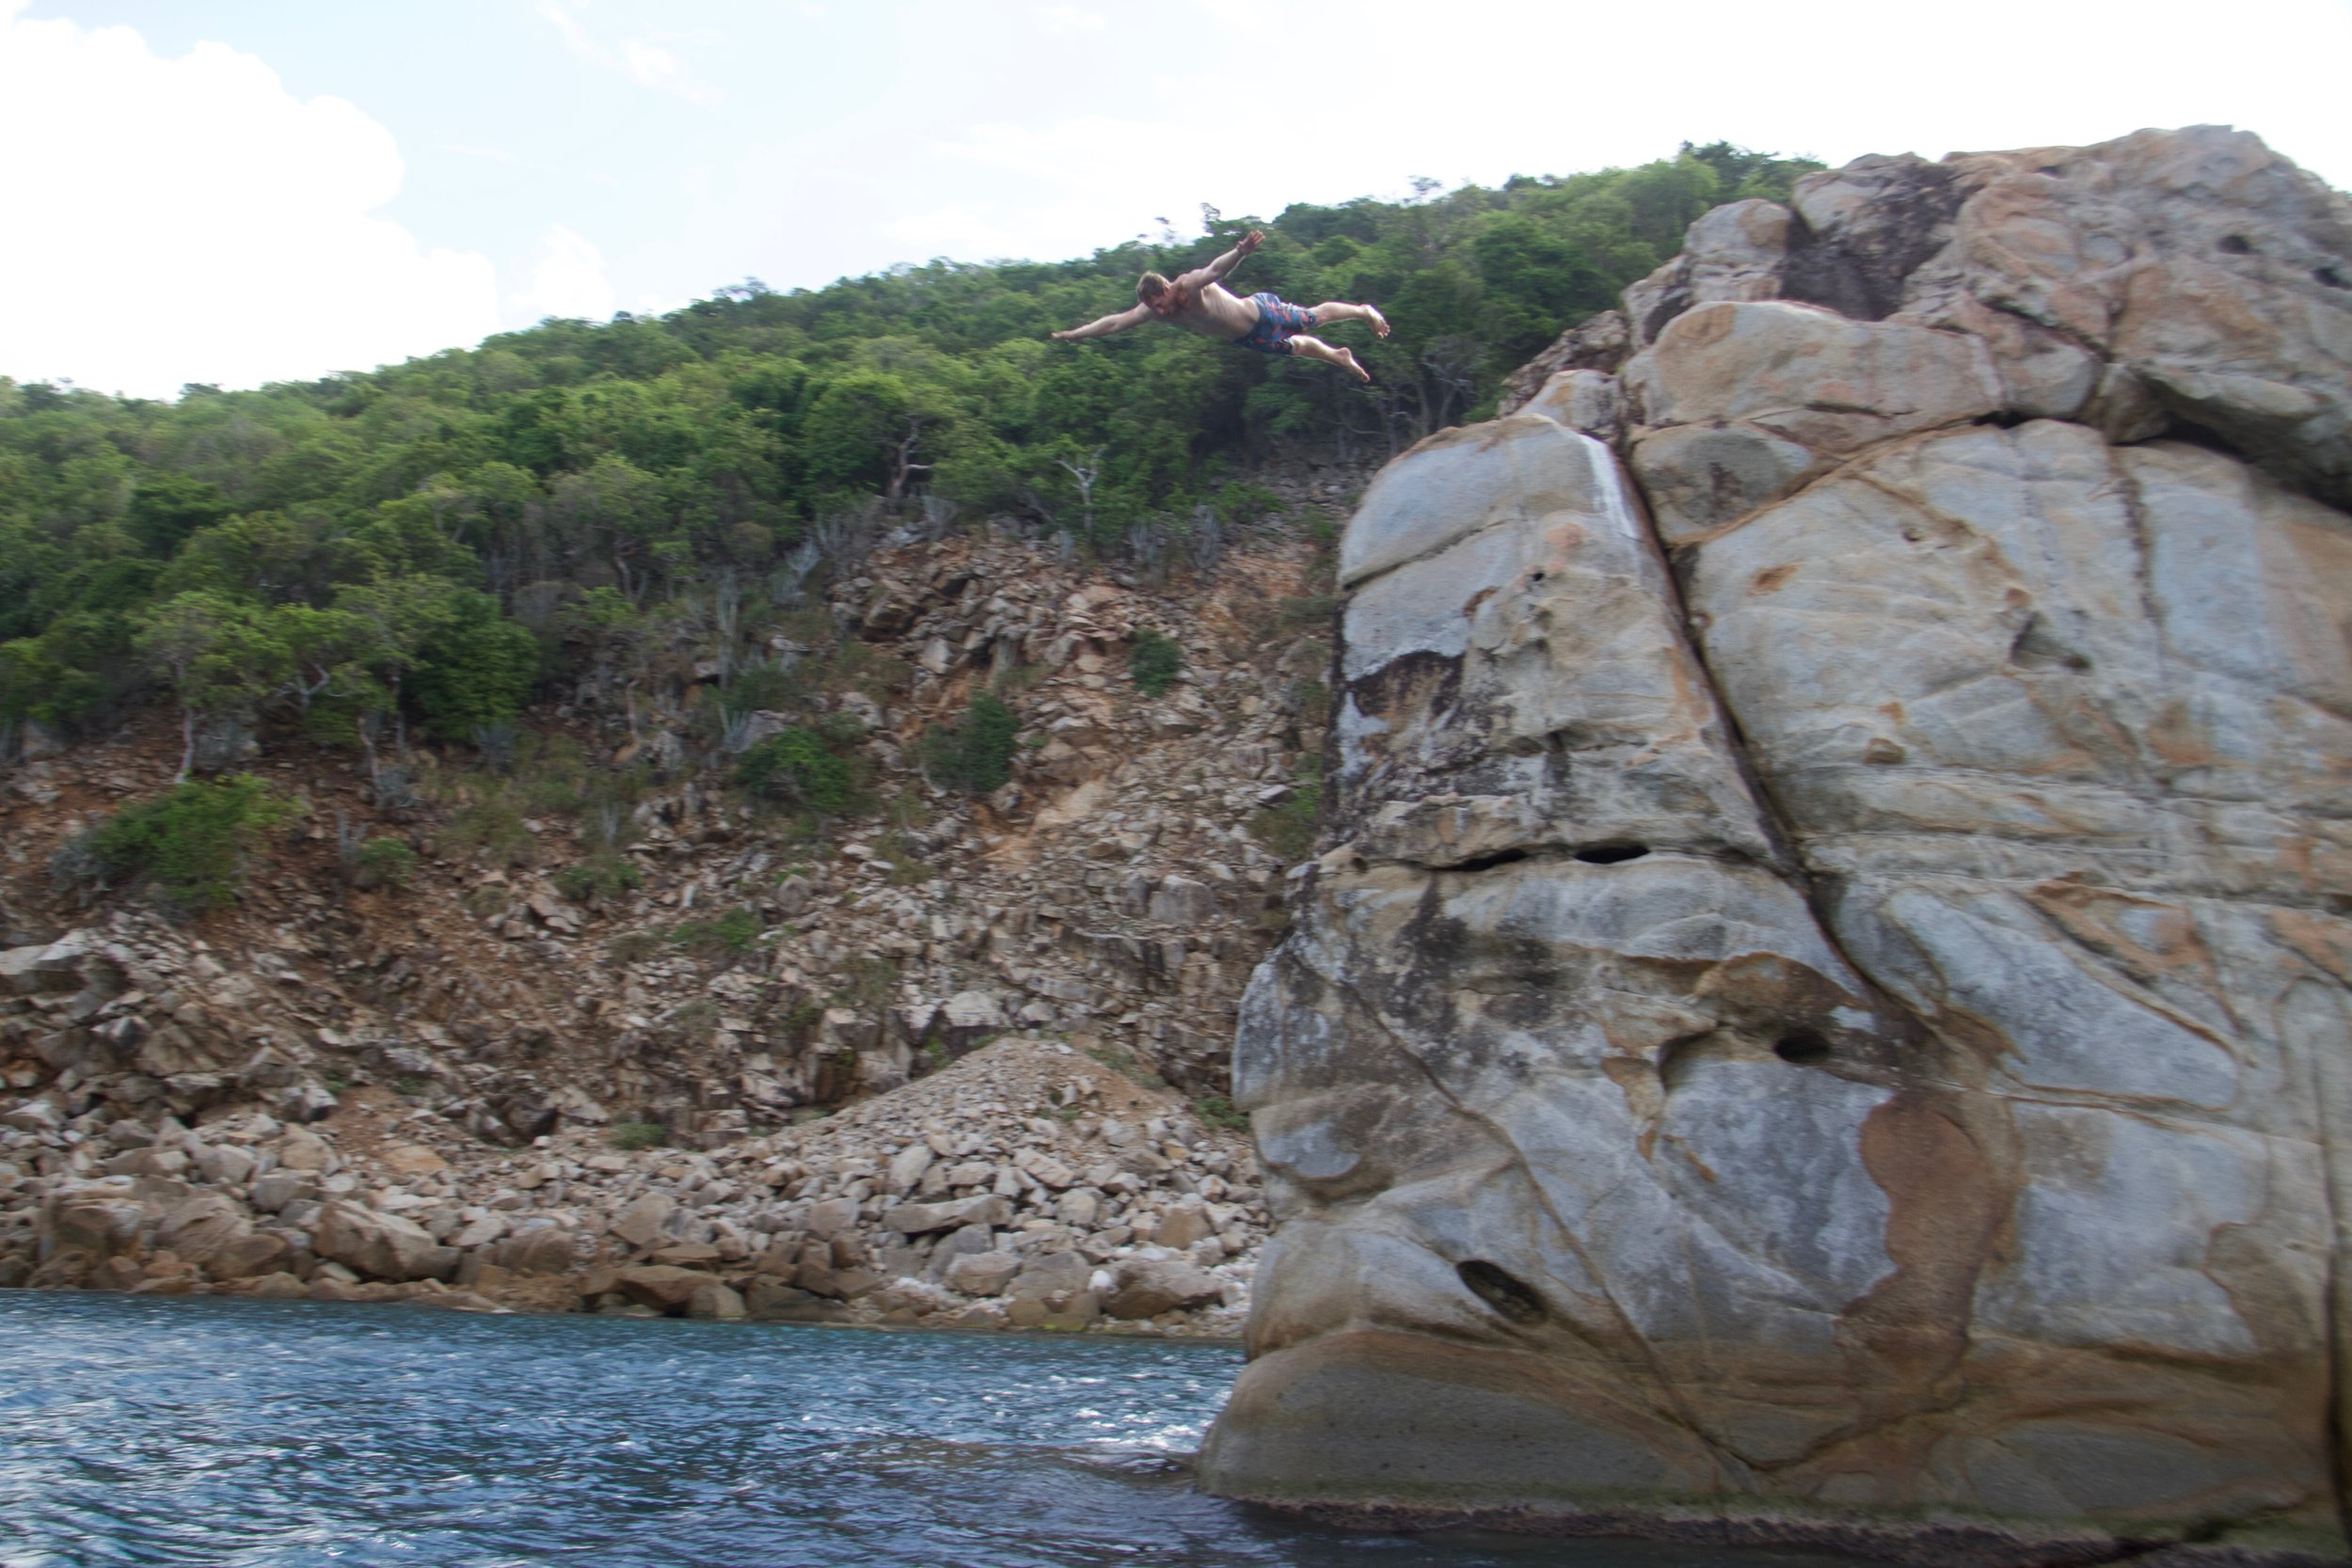 The end of the trip and finally found a rock to jump off of!